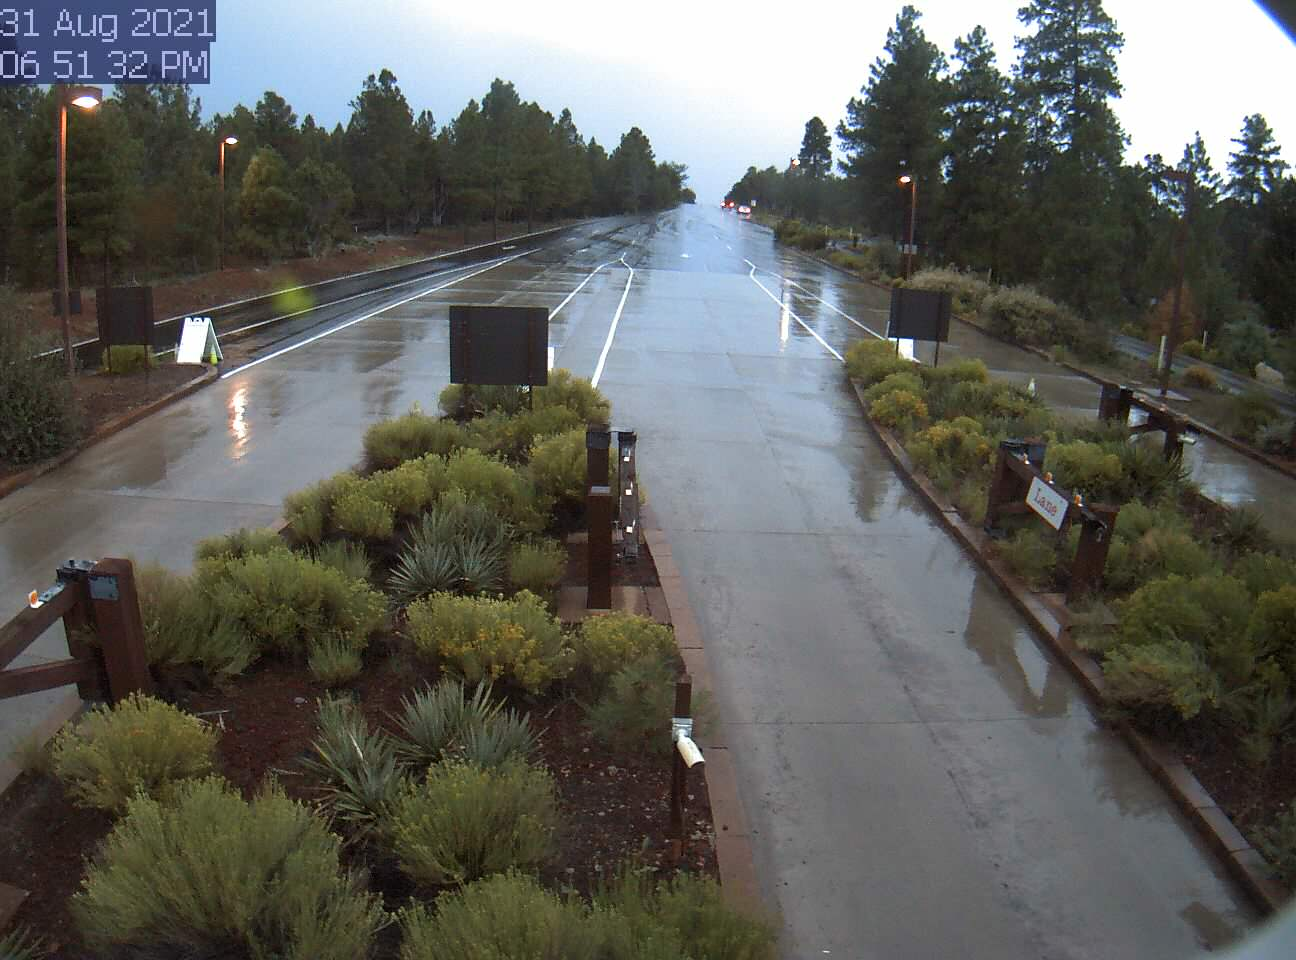 Grand Canyon National Park - South Entrance Station preview image